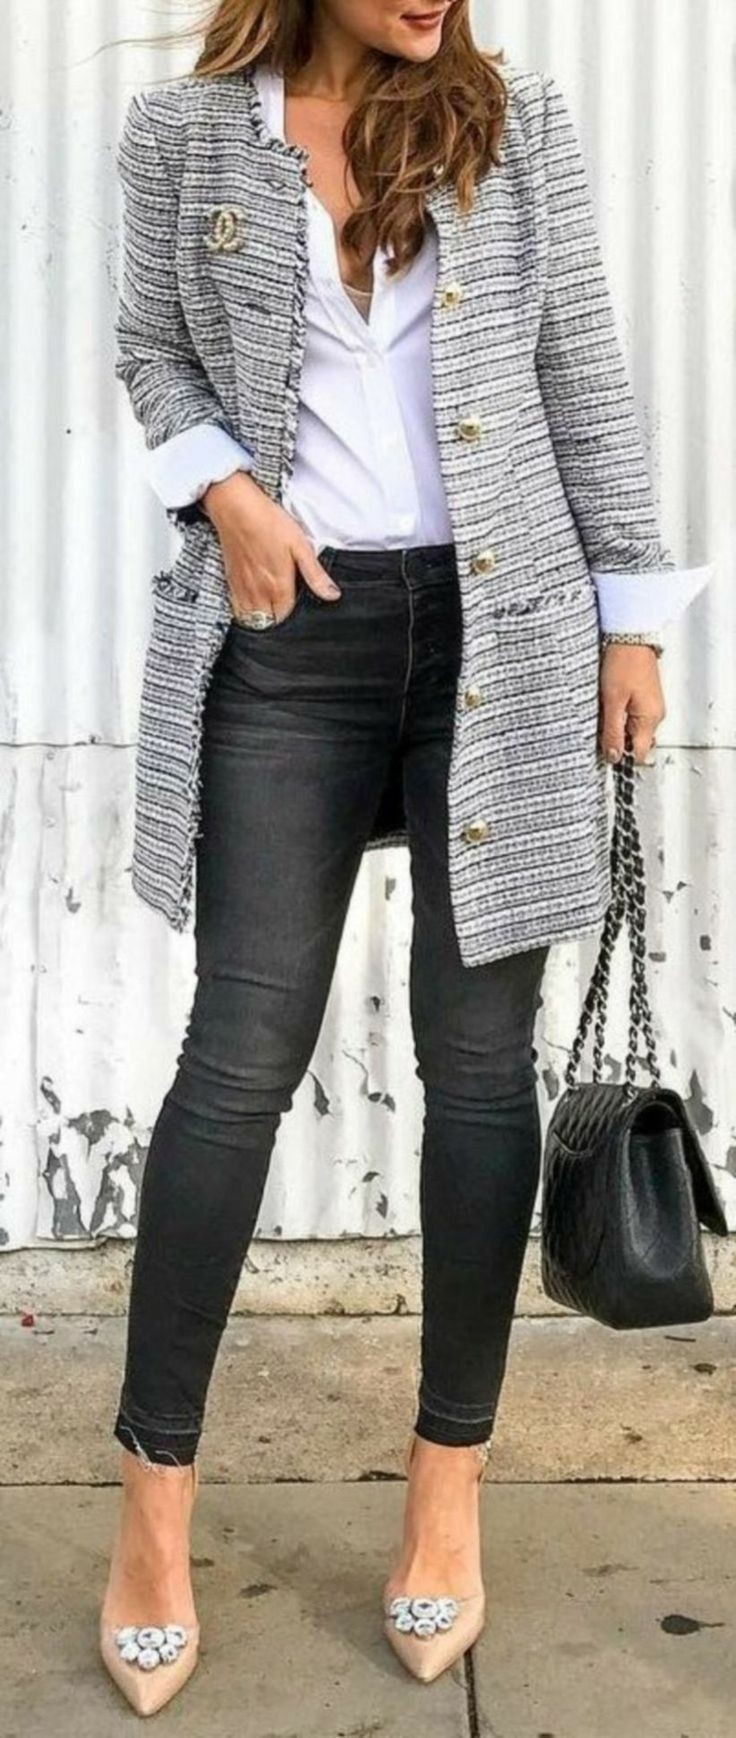 Winter smart casual outfit ideas